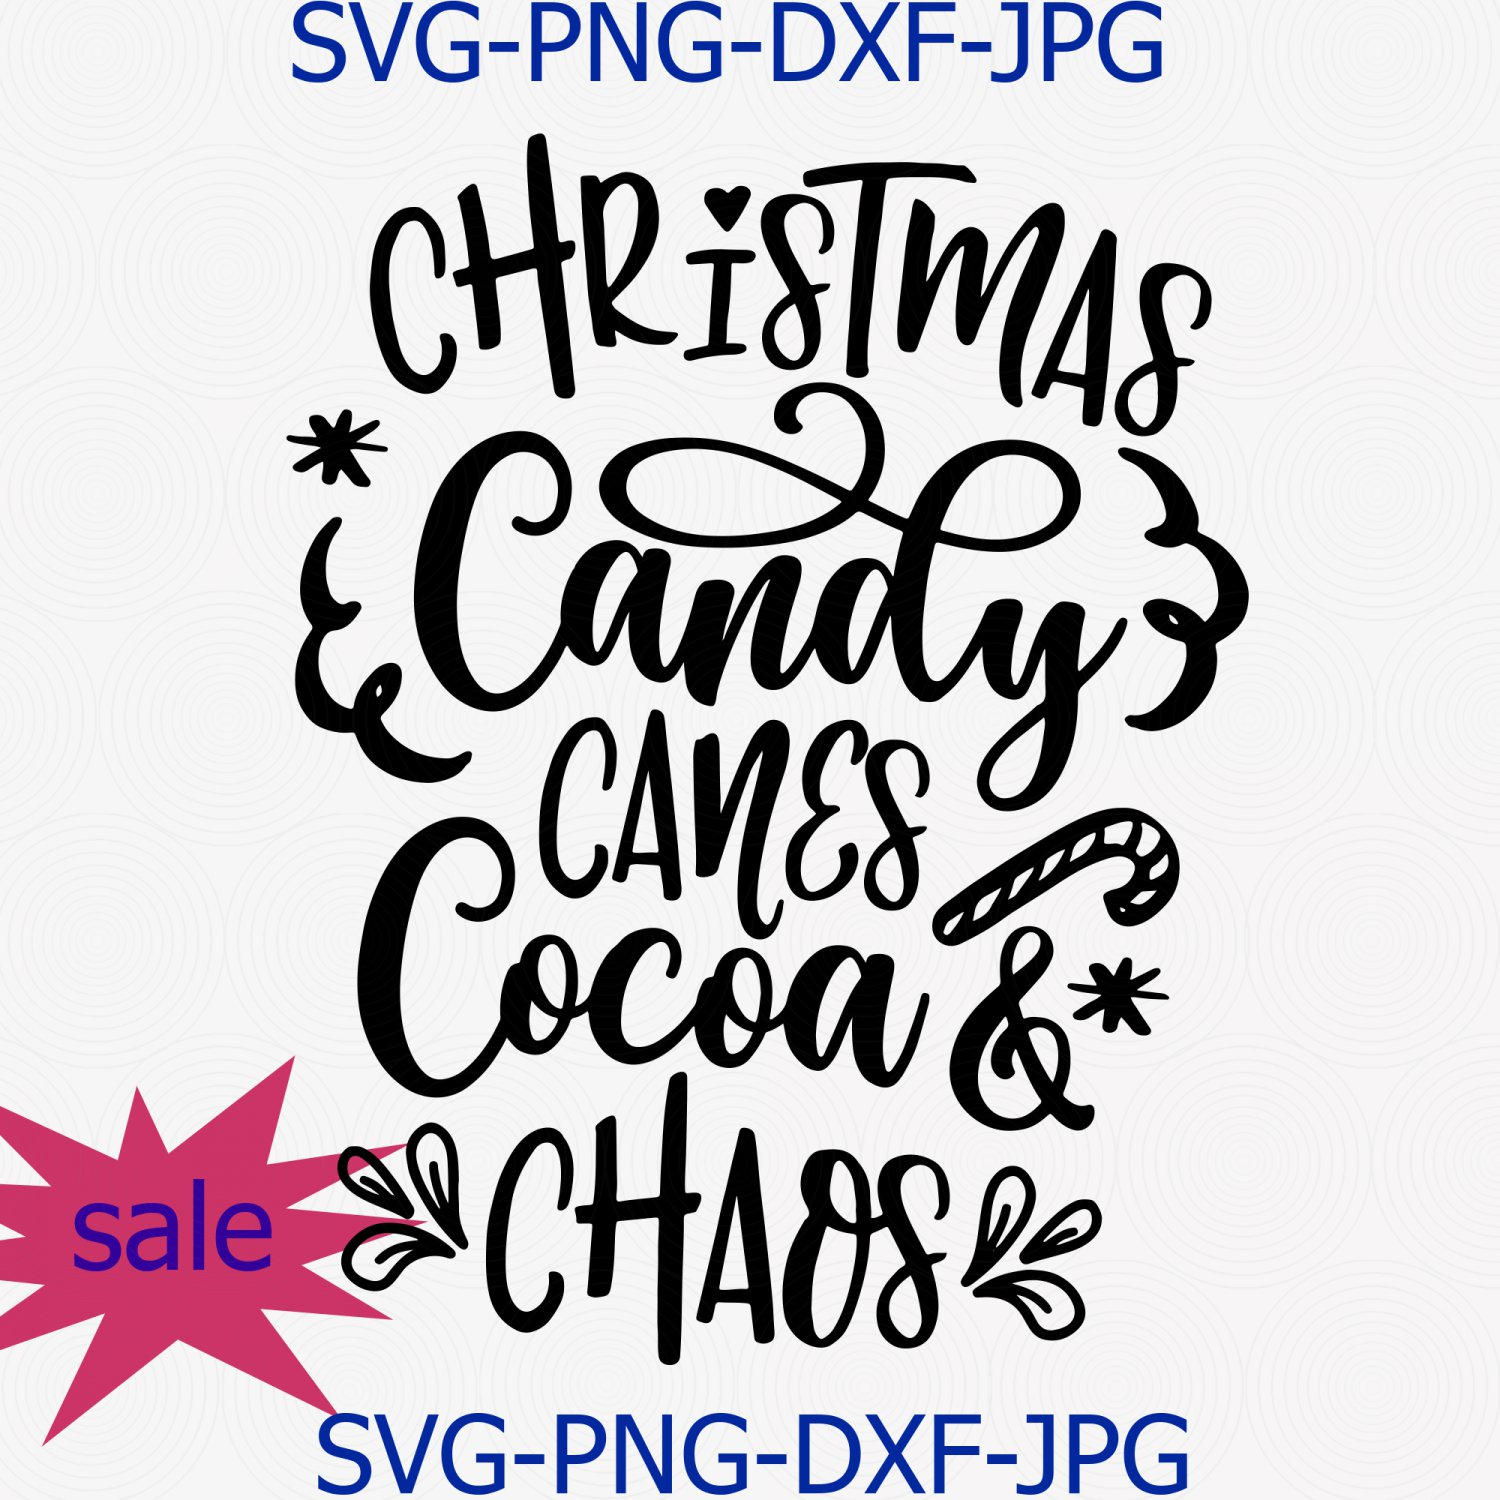 Christmas Candy Canes Cocoa And Chaos Svg Png Cut File, Christmas Quote Svg